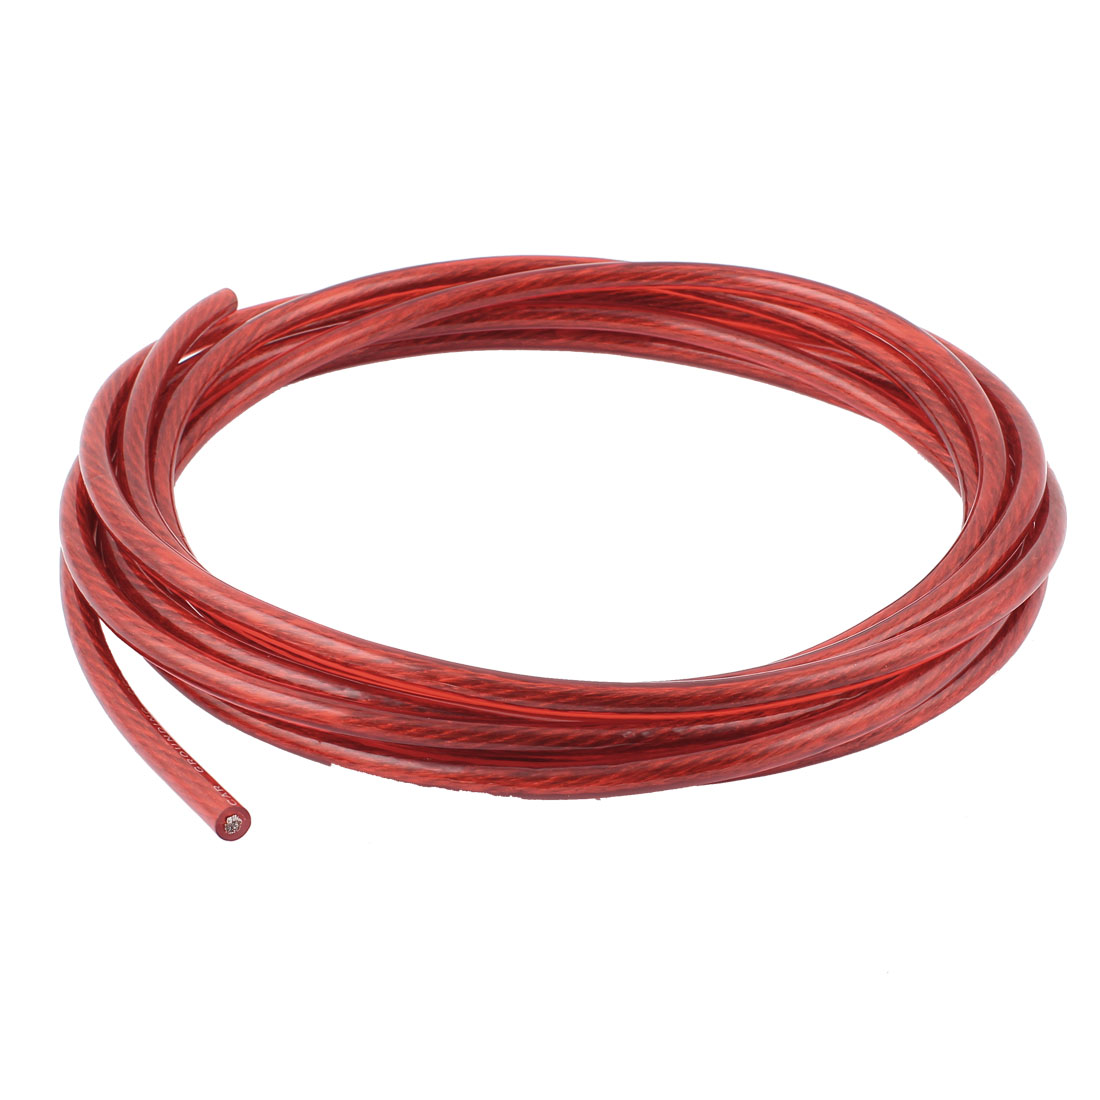 Car Universal Red Plastic Power Ground Grounding Wire Cable 66A 4.5M